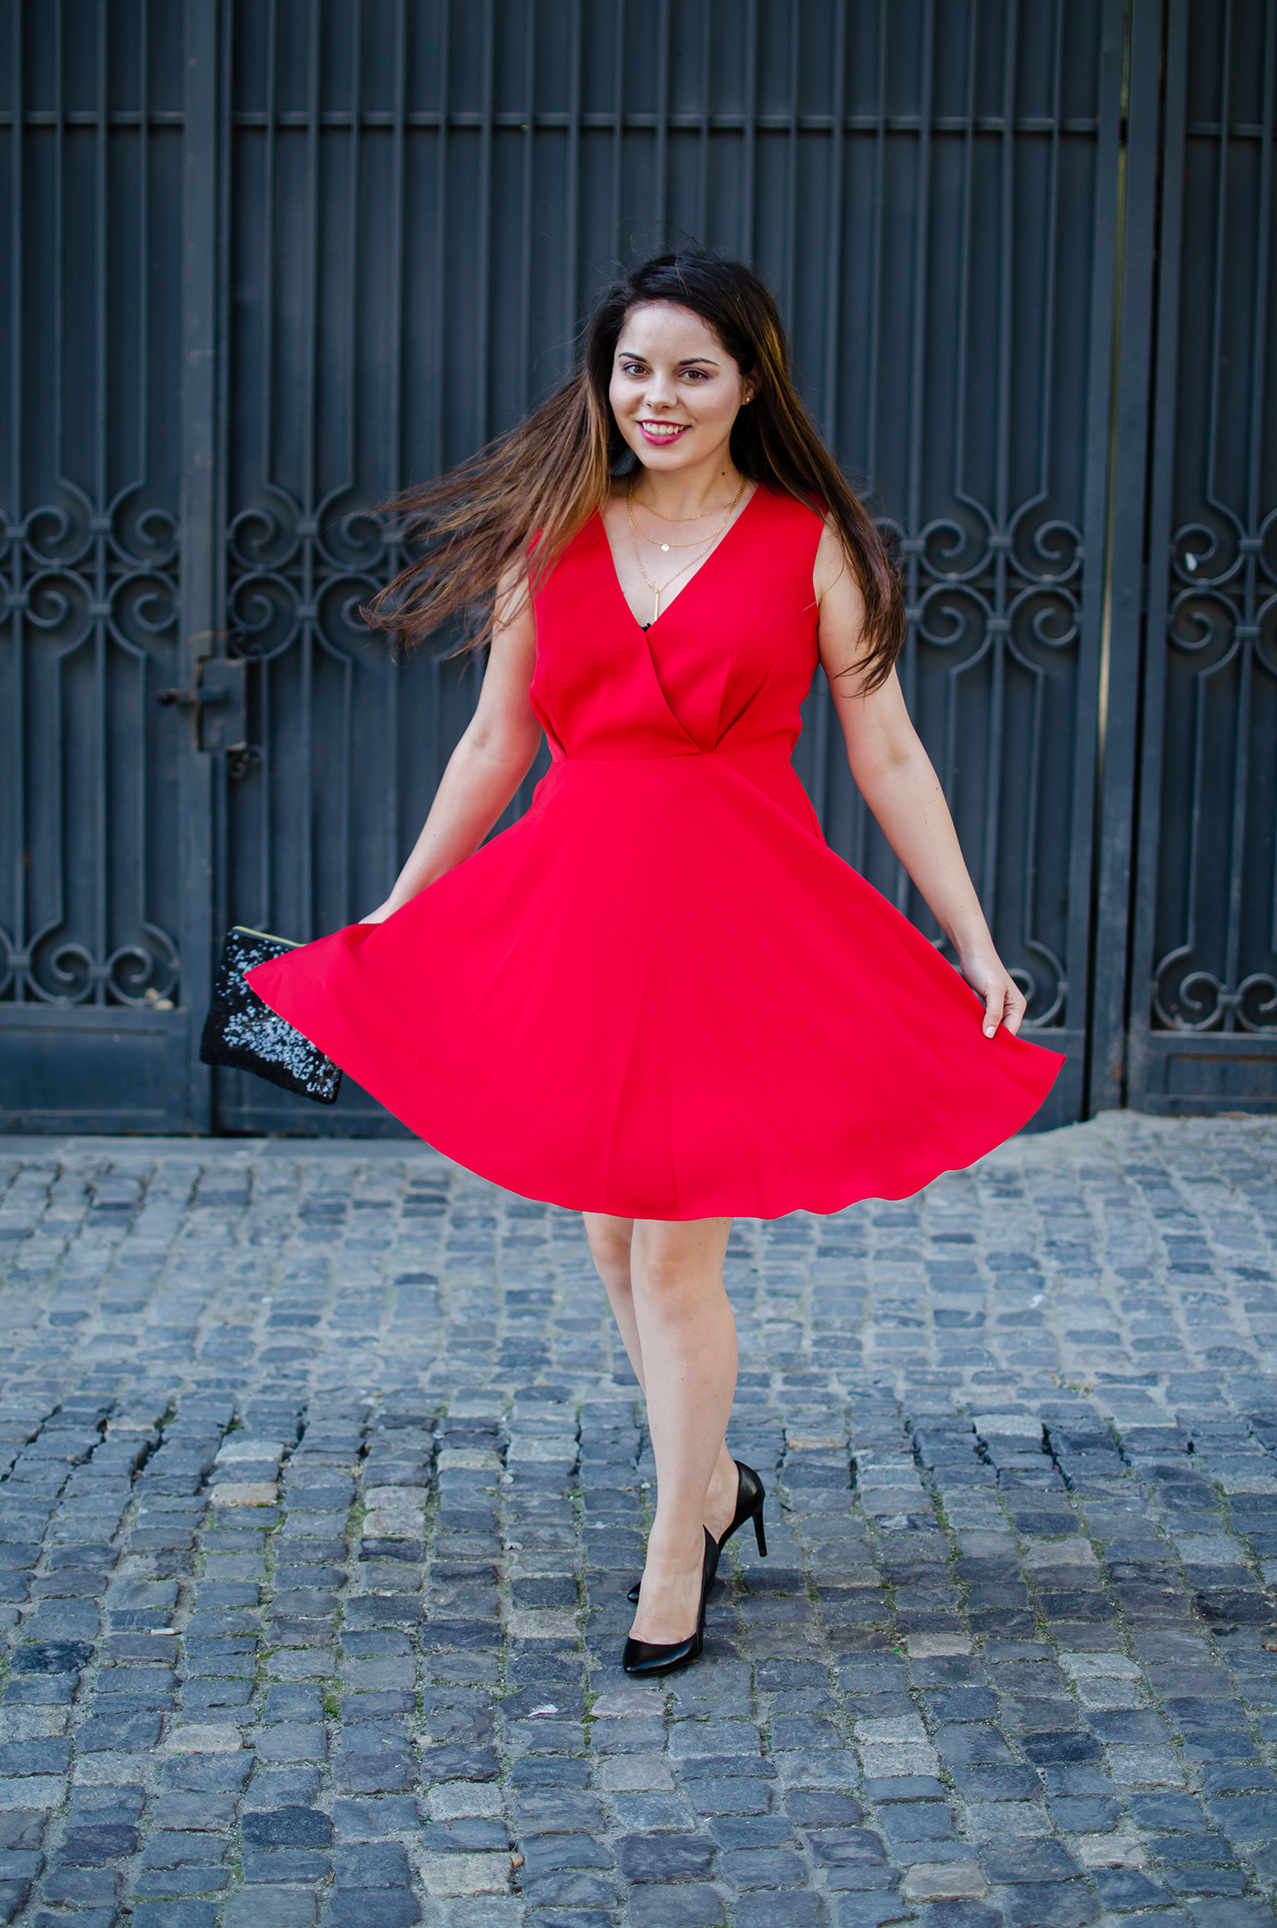 twirl red dress